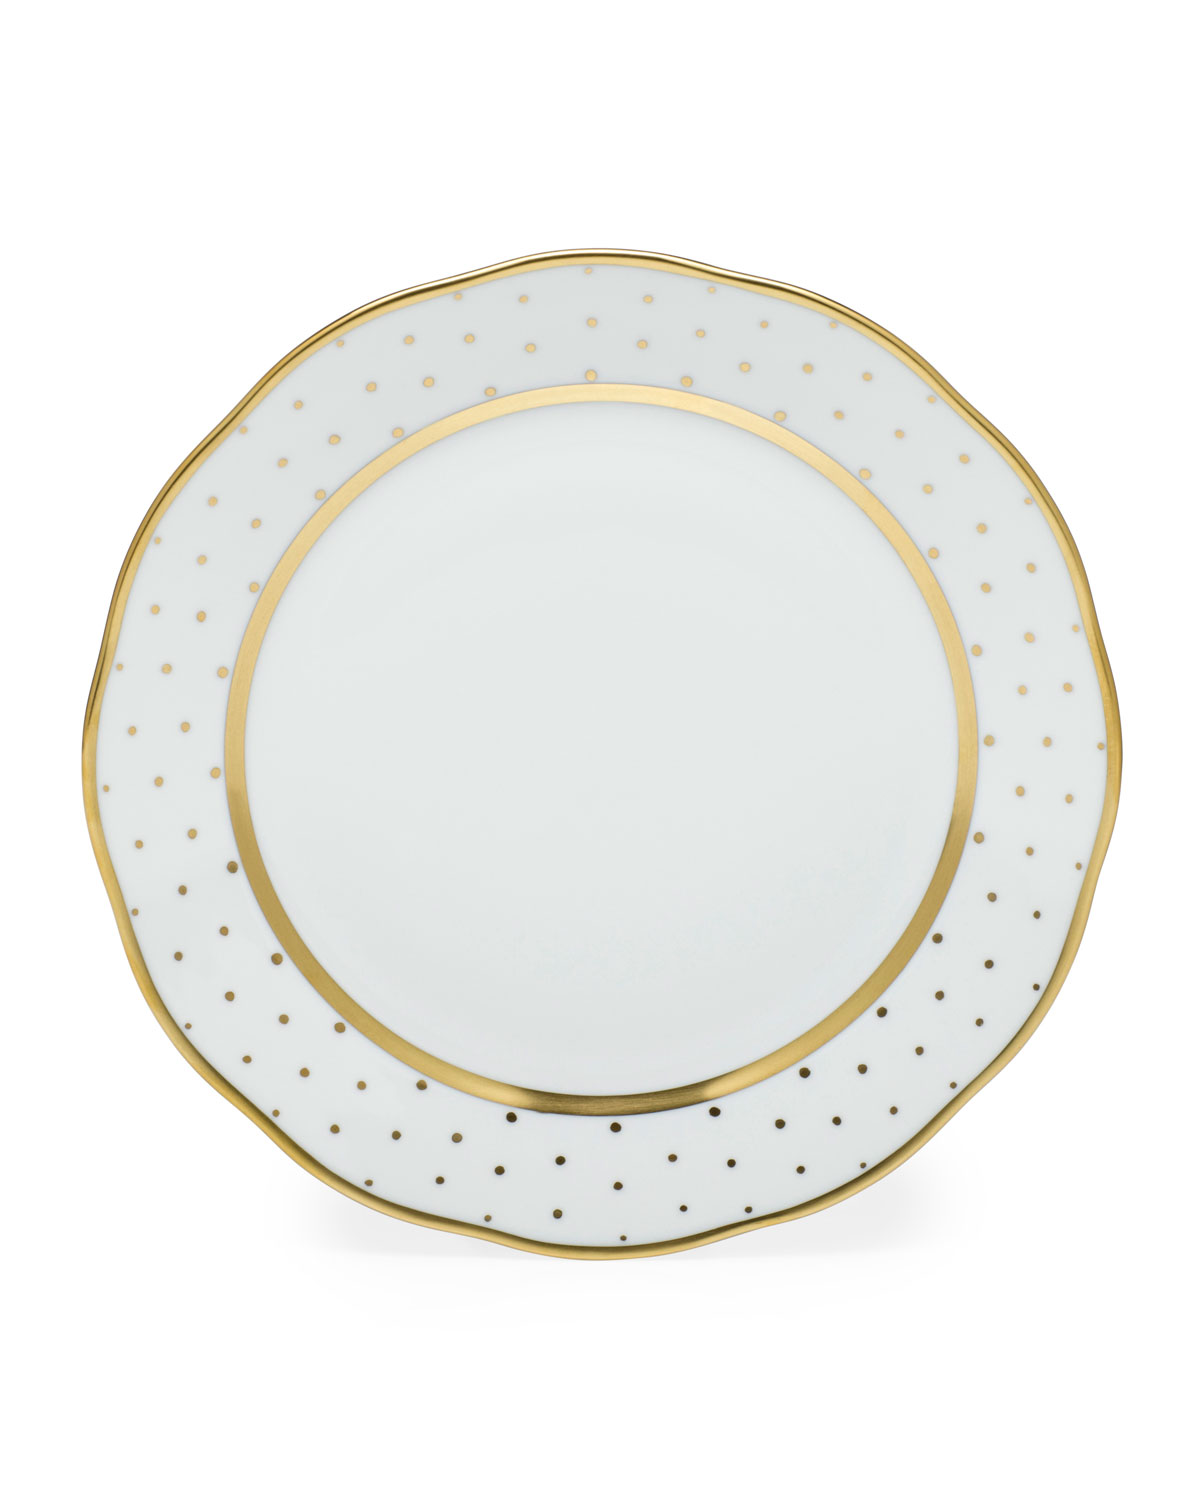 Herend Dinnerwares CONNECT THE DOTS DINNER PLATE